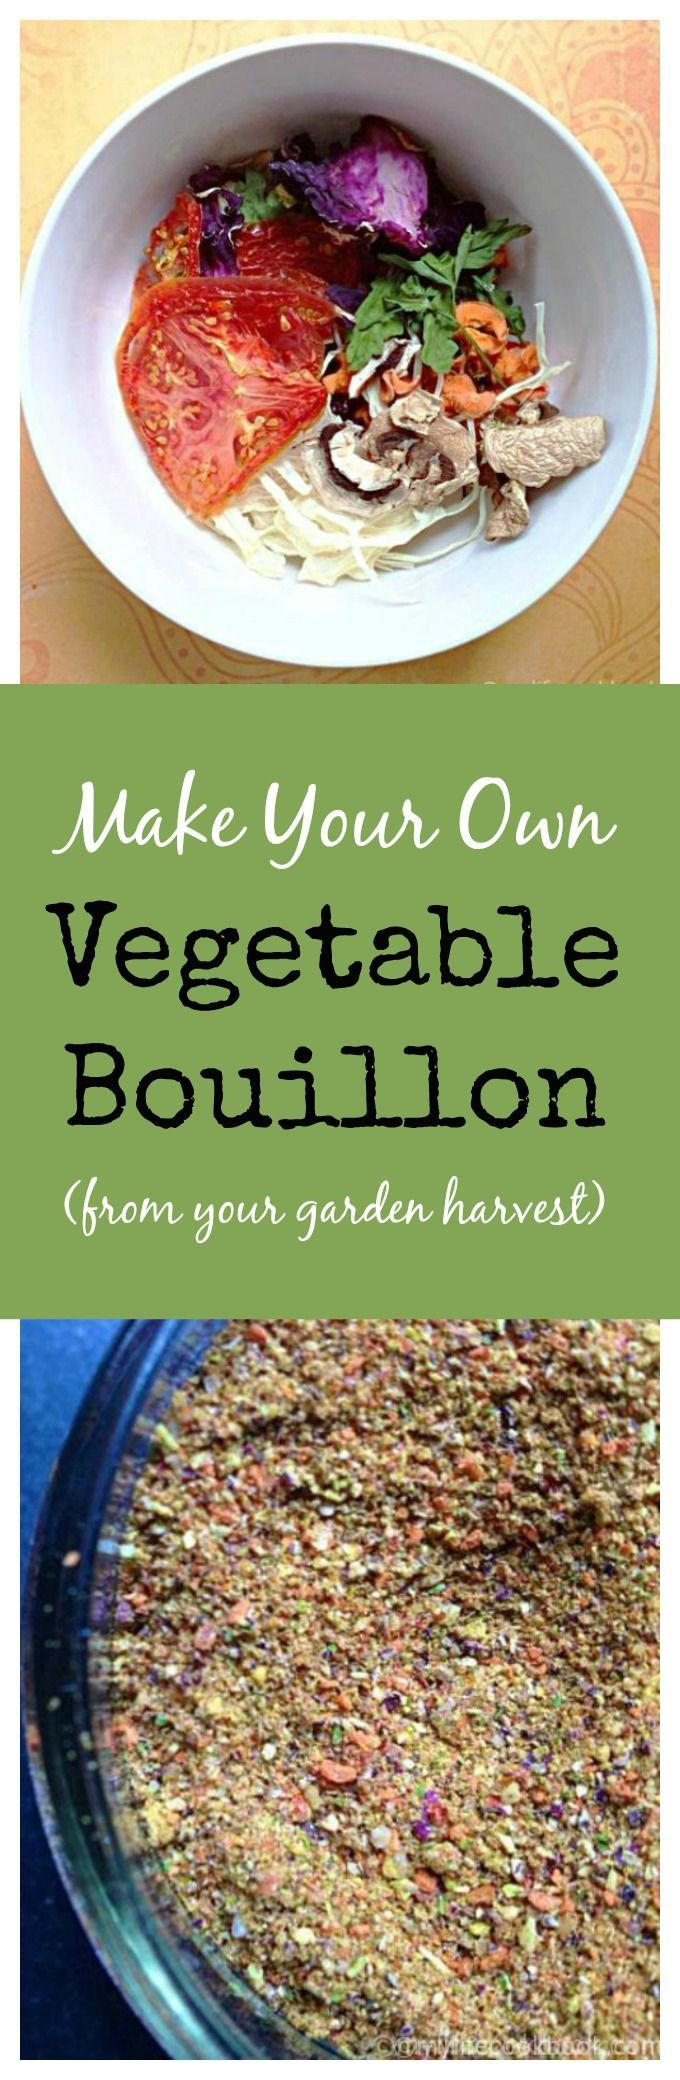 This is an easy way to make vegetable bouillon from fresh vegetables you get from your garden or farmers market.